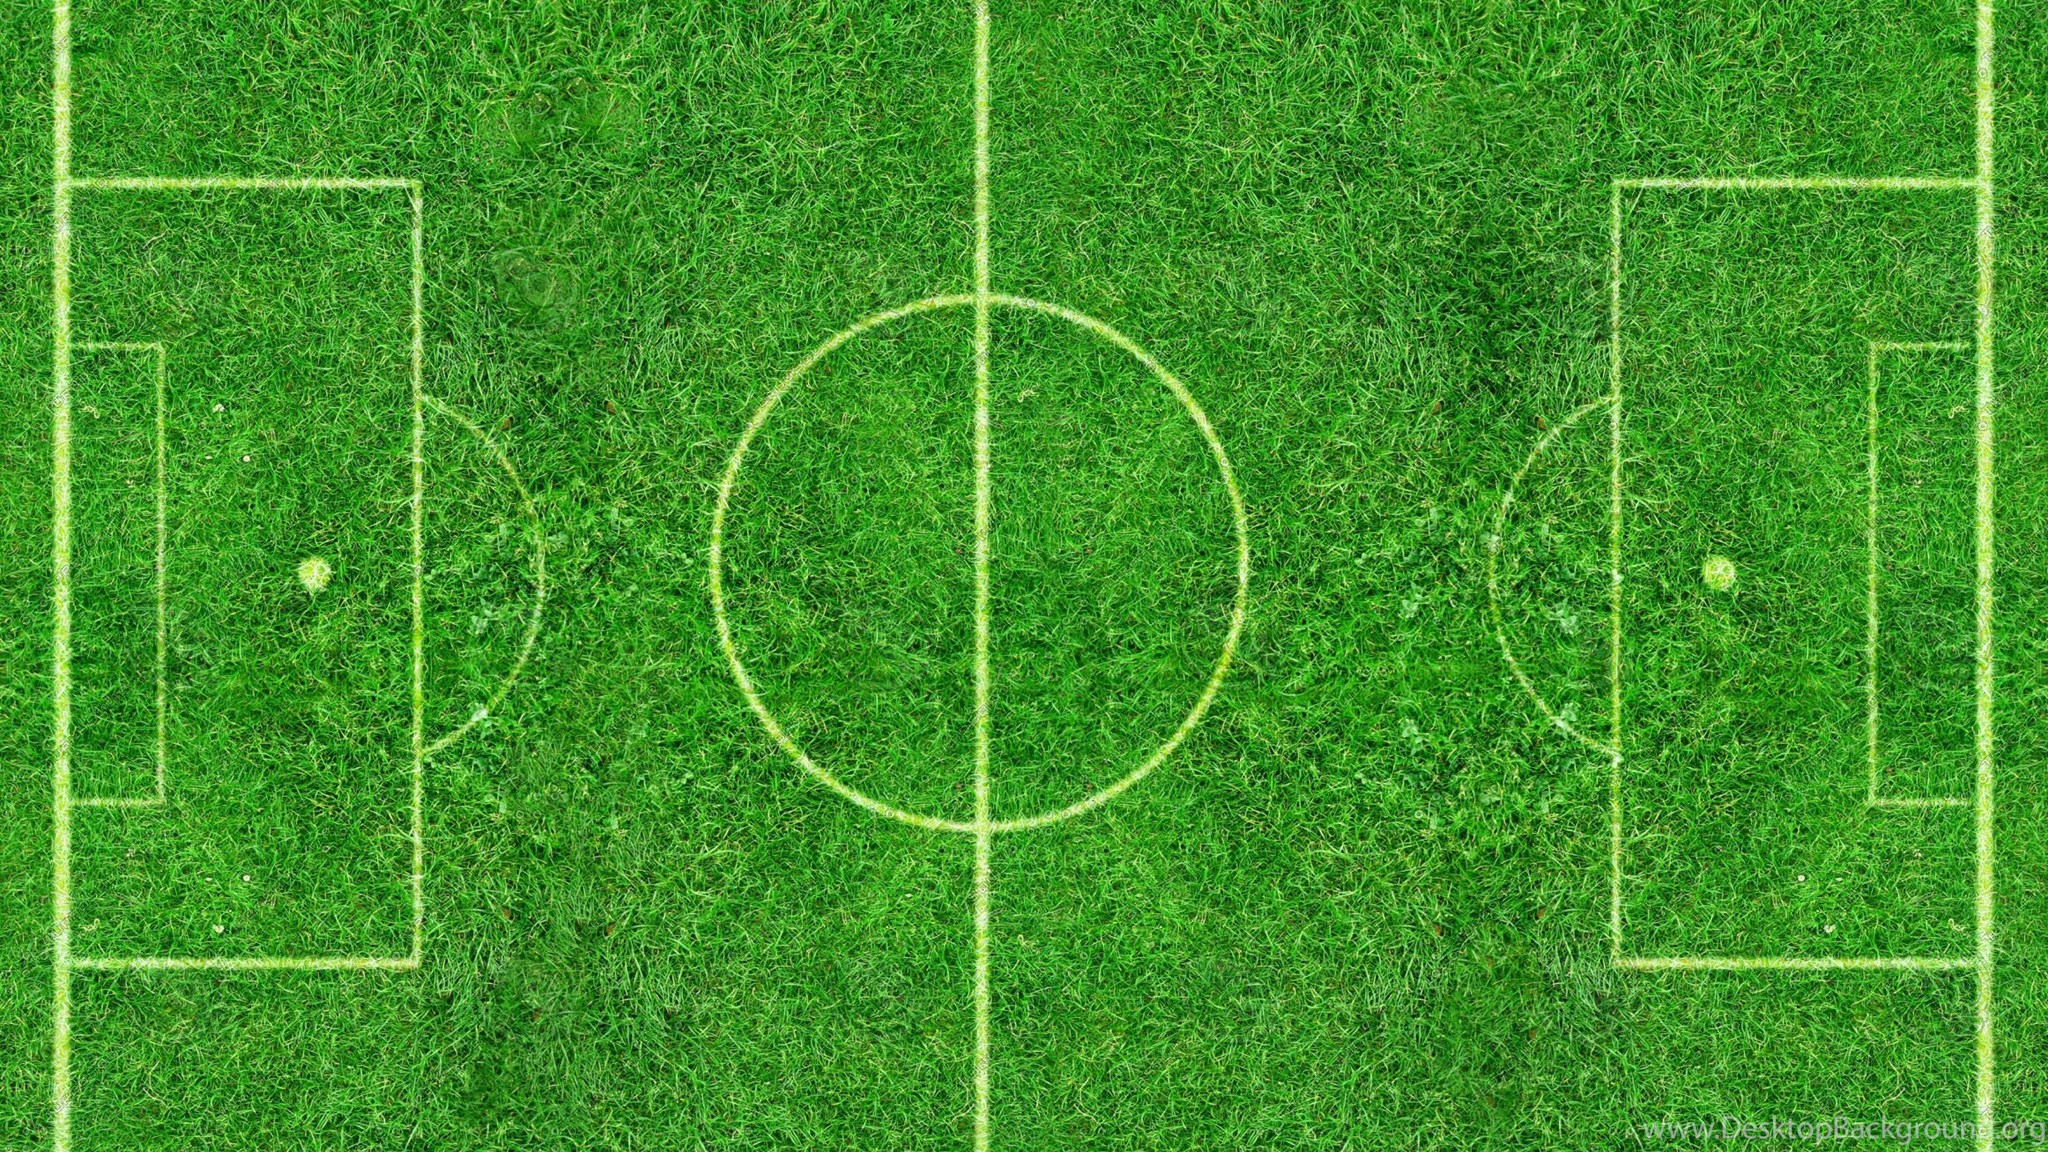 Texture Jpg Soccer Field Football Desktop Background